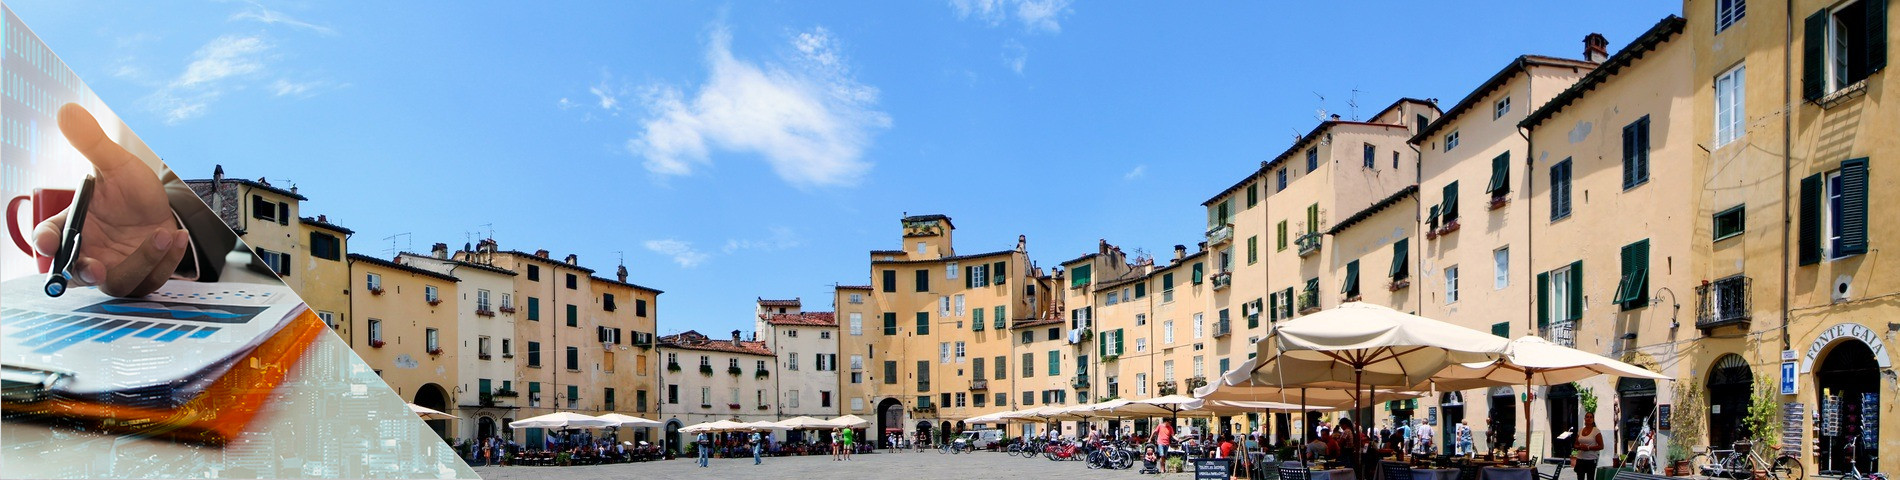 Lucca - Banking & Finance